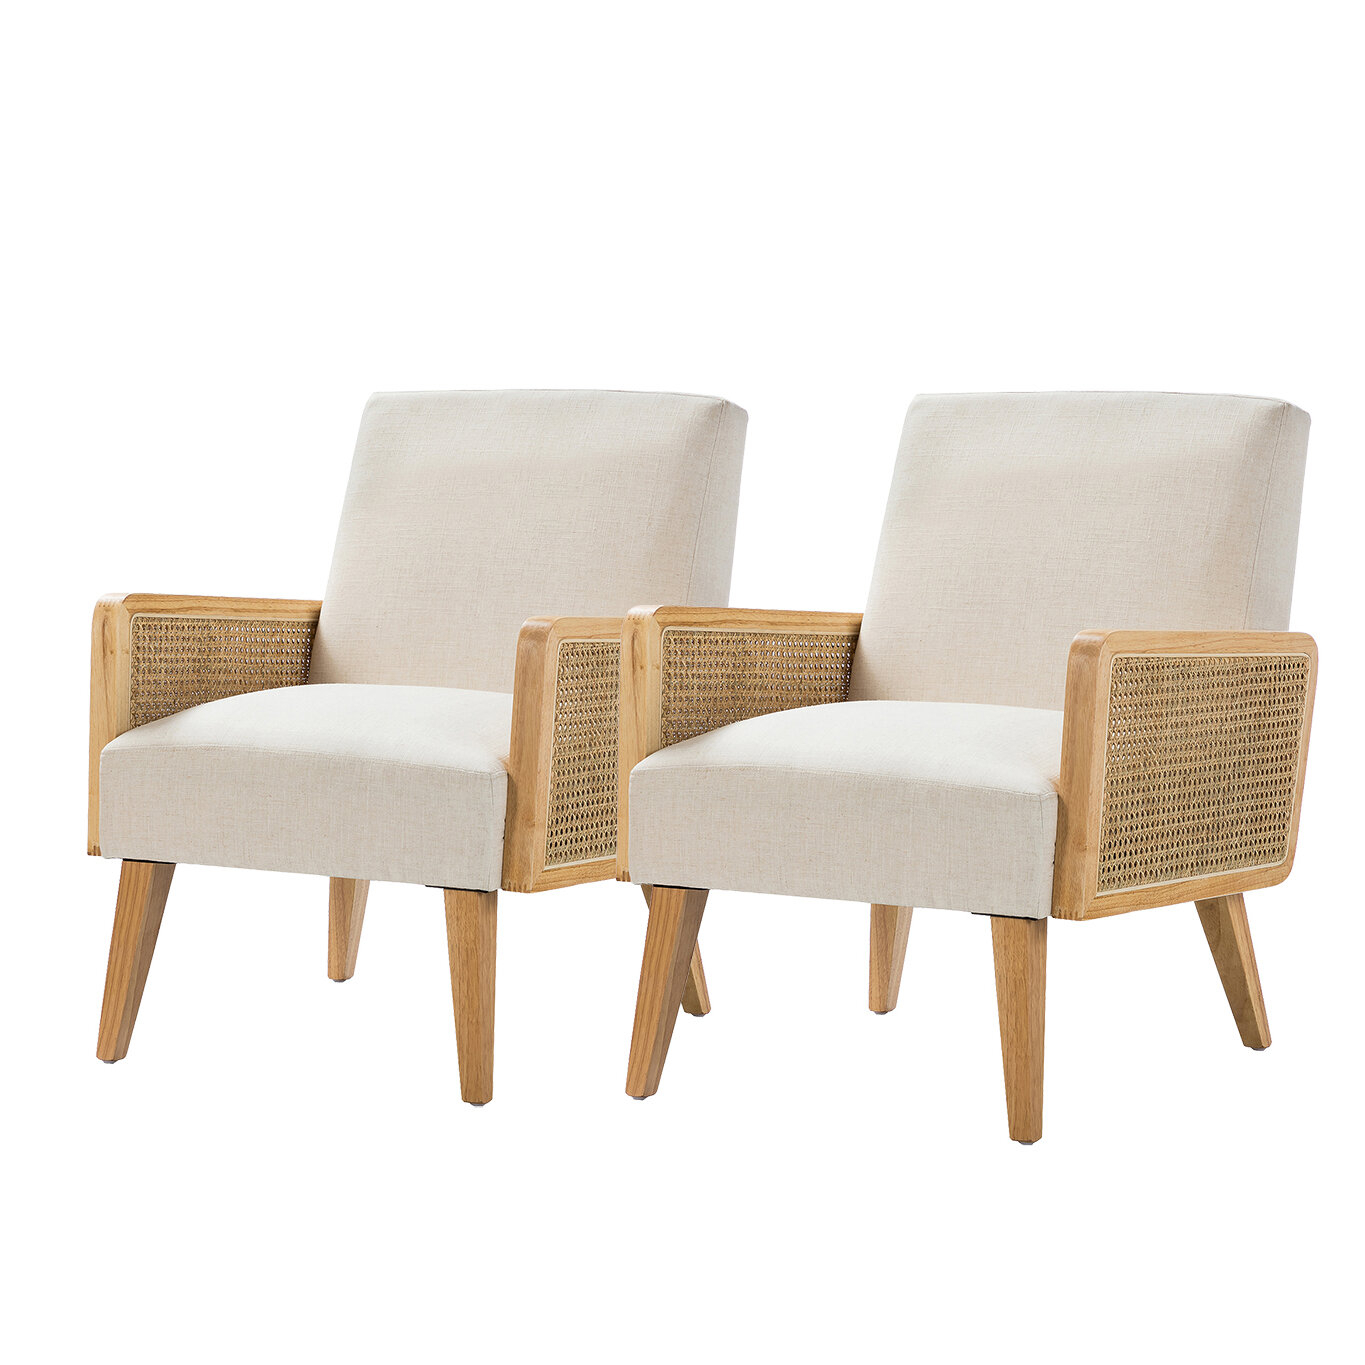 Arm Modern & Contemporary Accent Chairs You'Ll Love In 2021 With Ragsdale Armchairs (View 7 of 15)